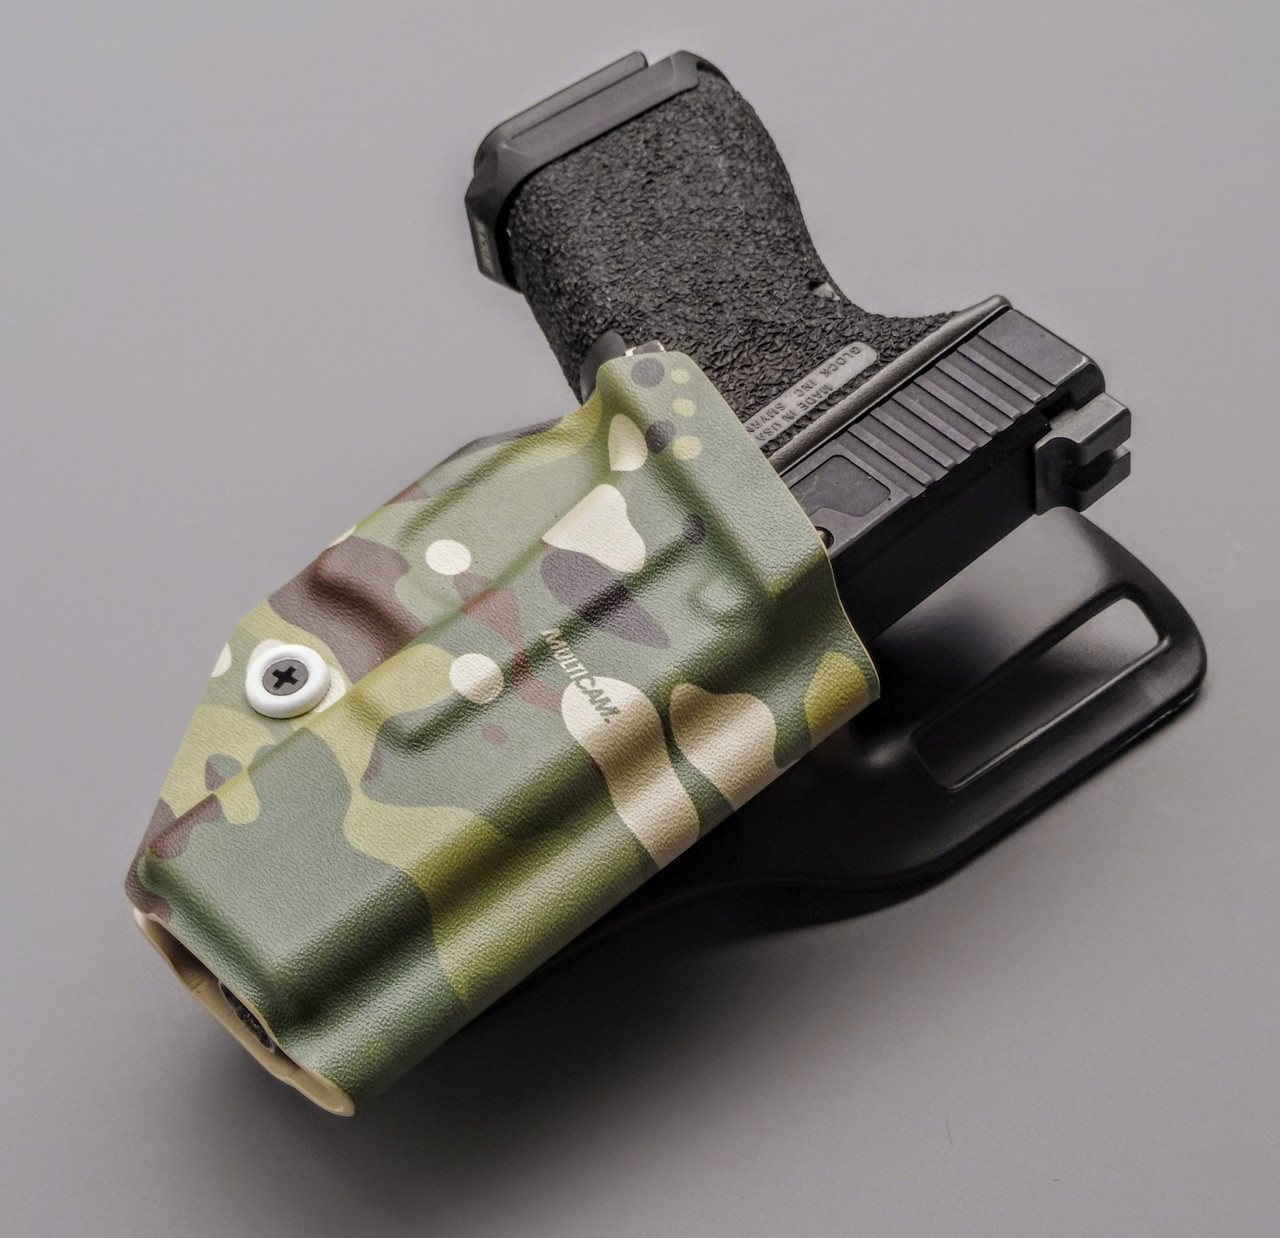 GLOCK 19 SAFARILAND UBL DROP HOLSTER